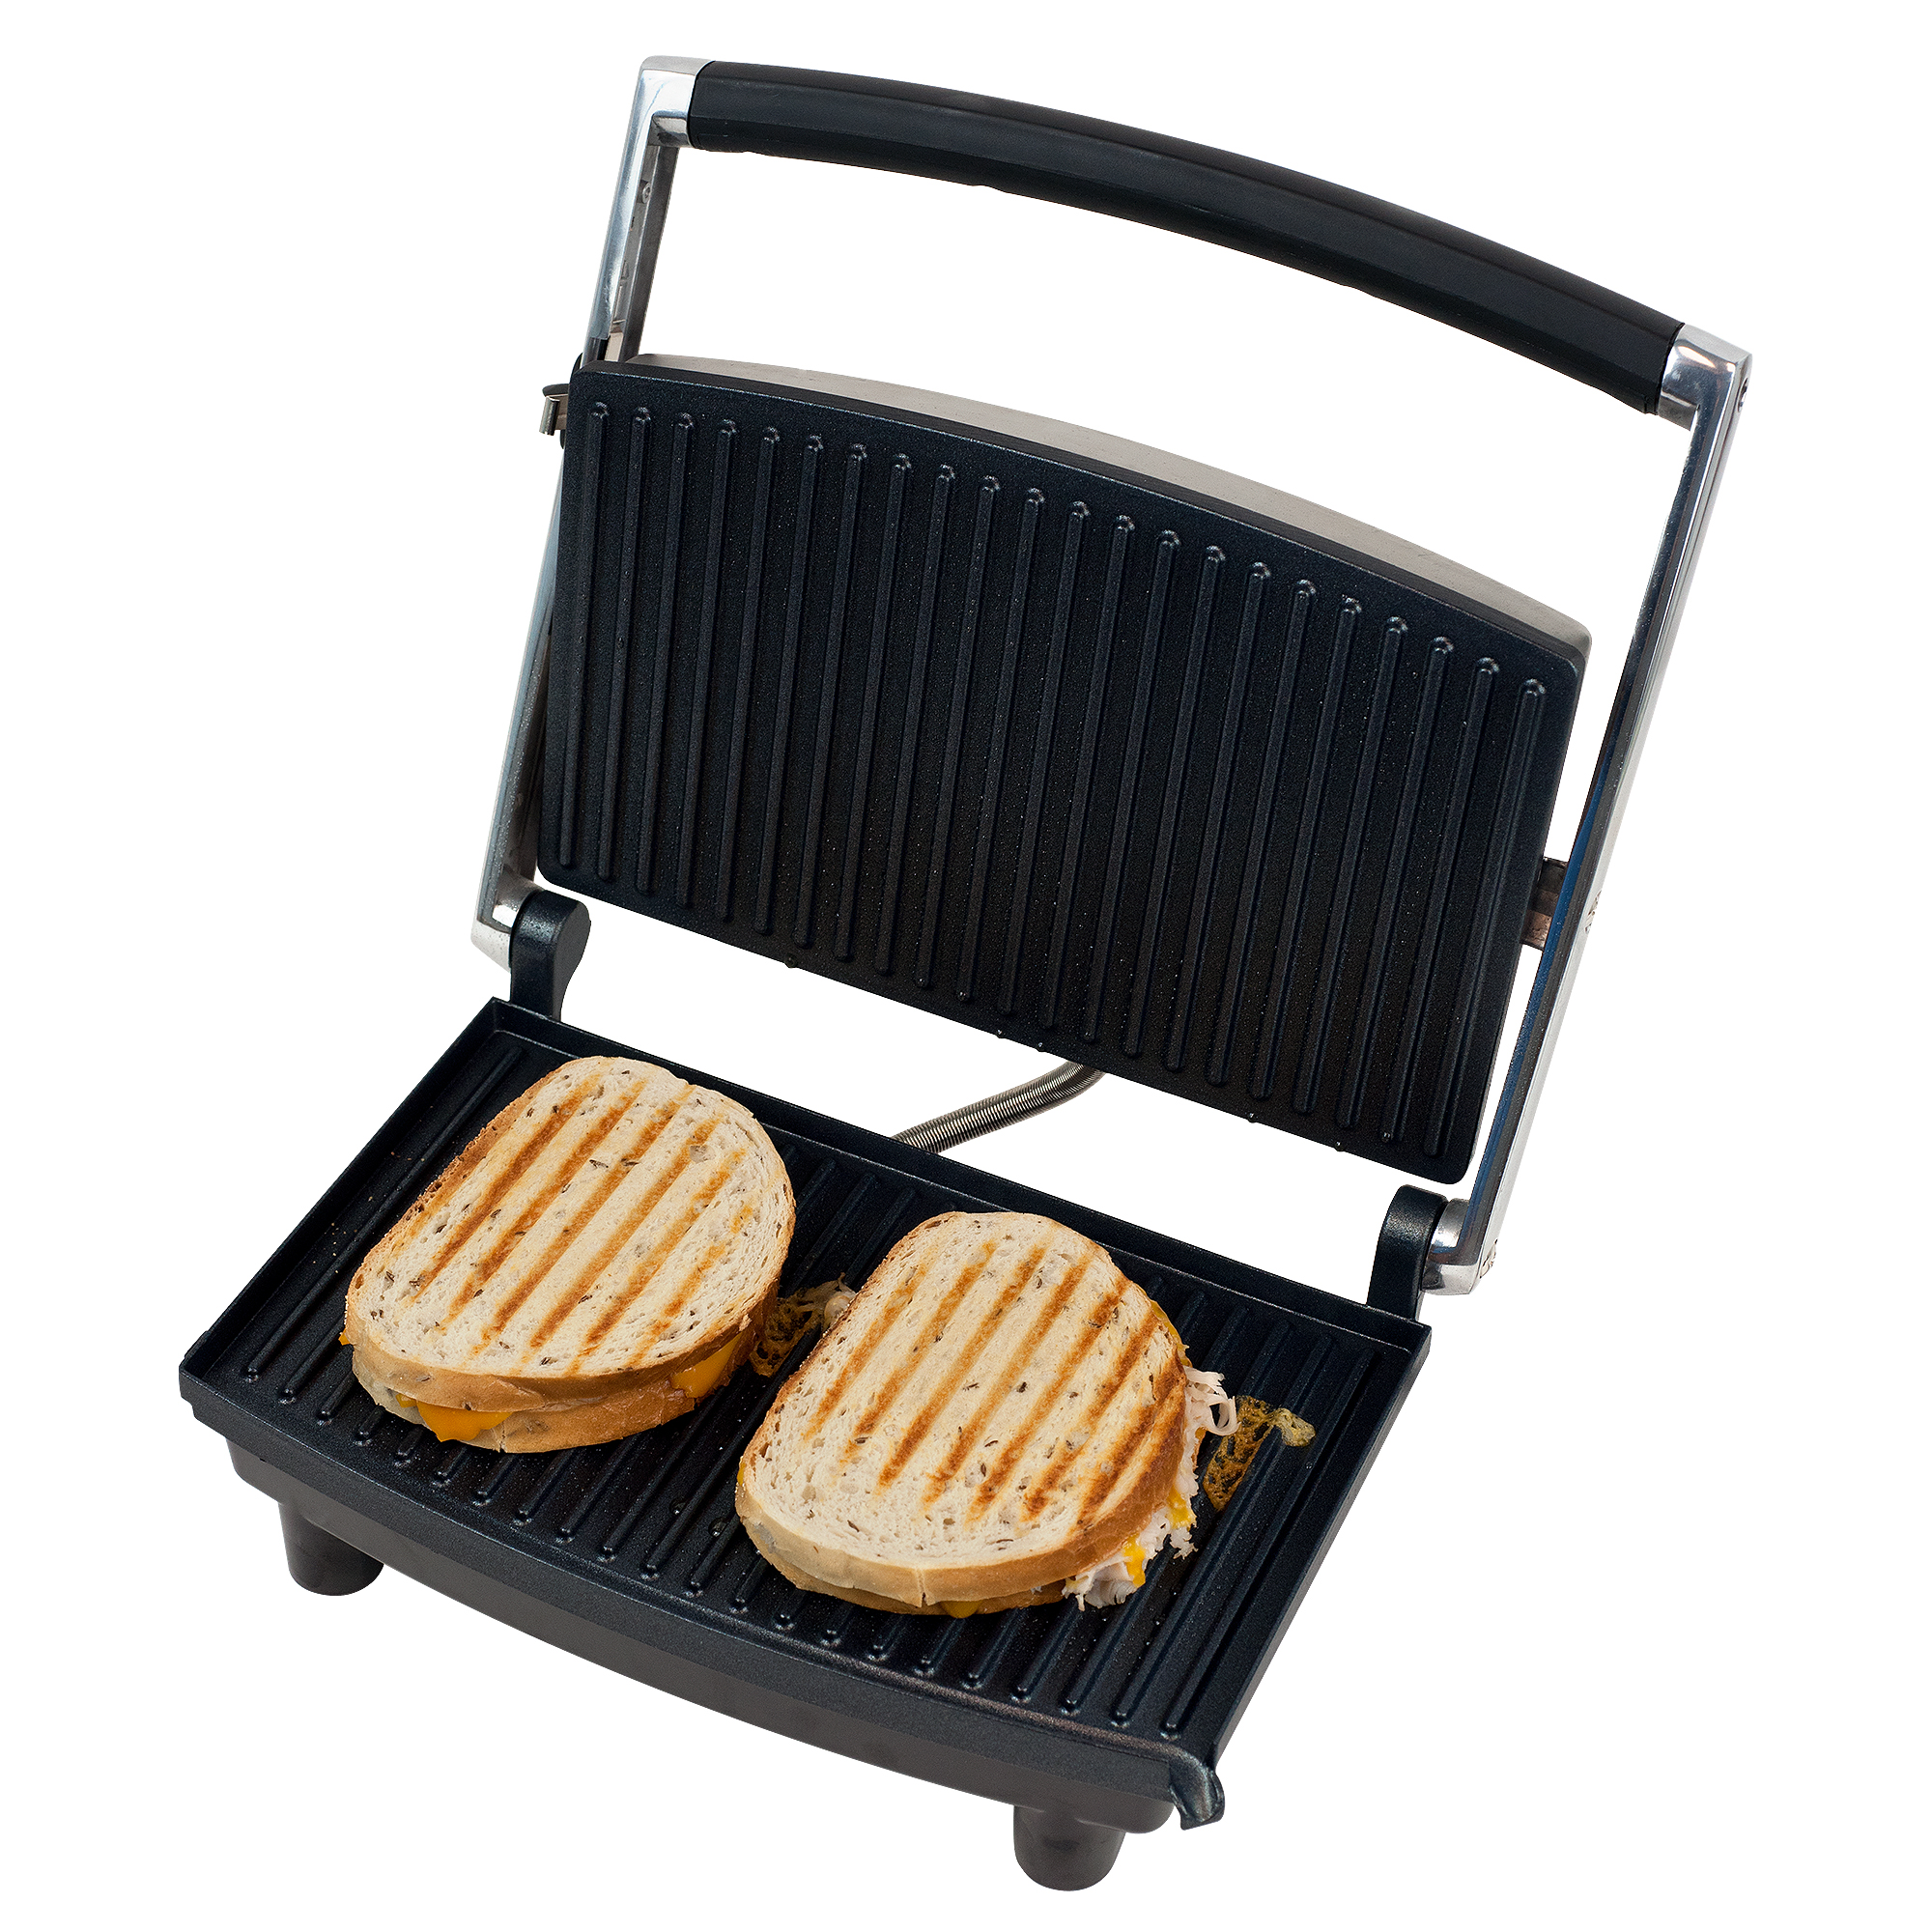 Panini Press Grill and Gourmet Sandwich Maker for Healthy Cooking